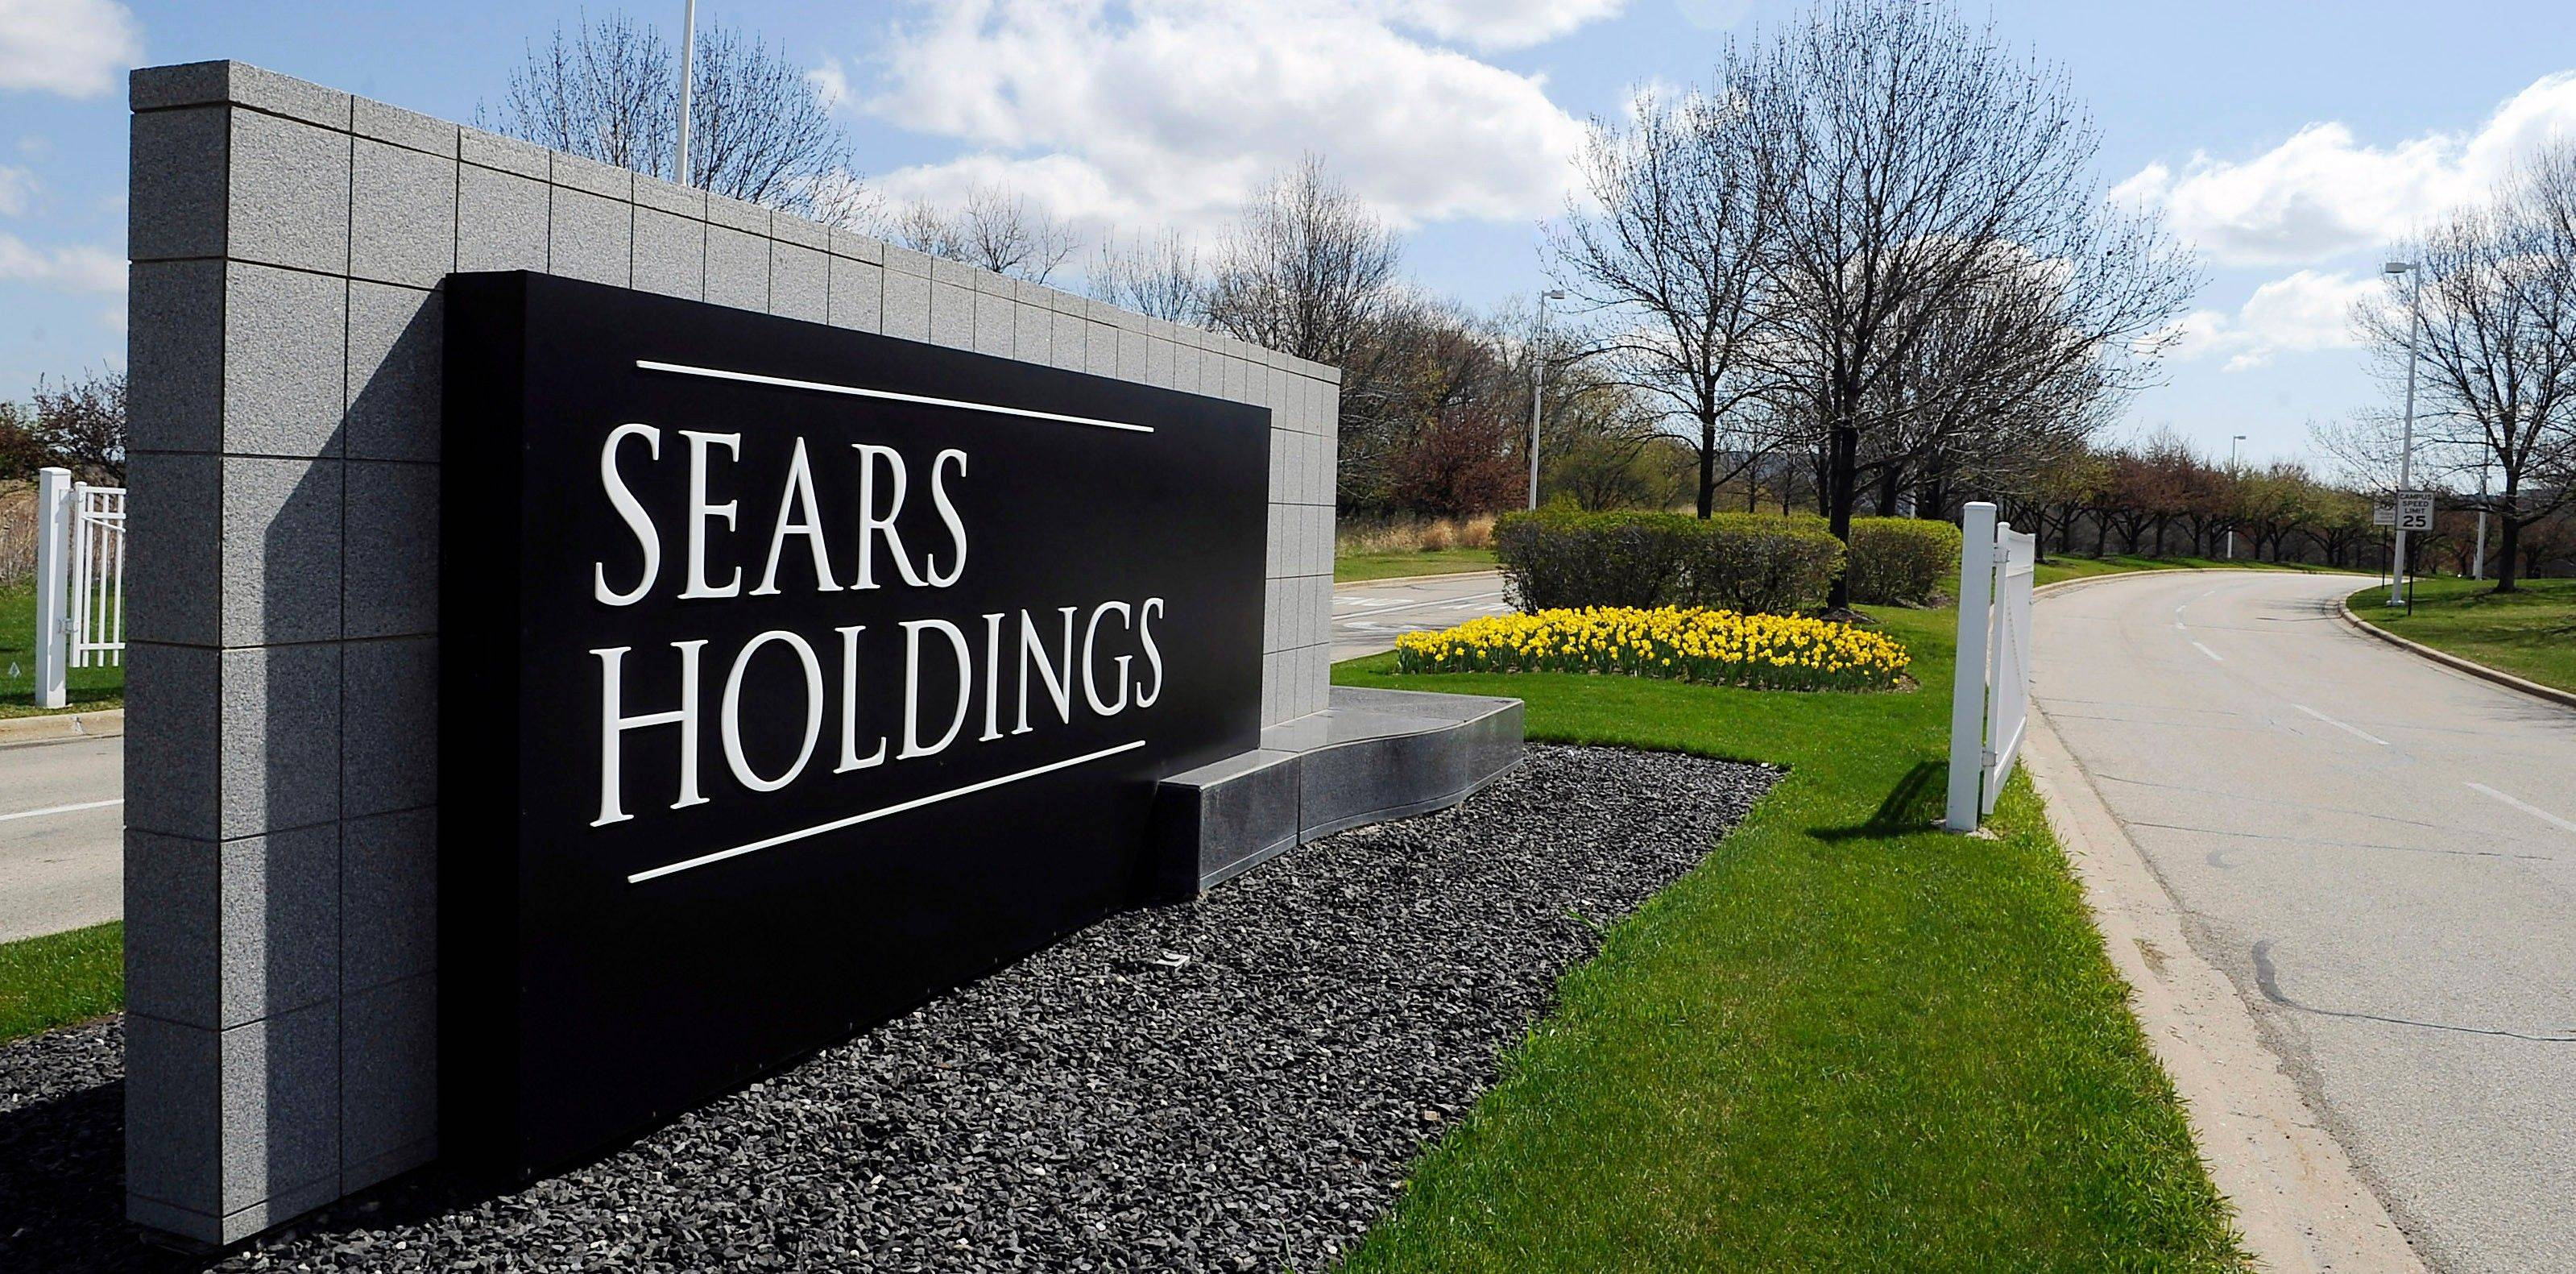 Sears Holdings Corp. CEO Lou D'Ambrosio met with Senate President John Cullerton at the company's Hoffman Estates headquarters Tuesday.